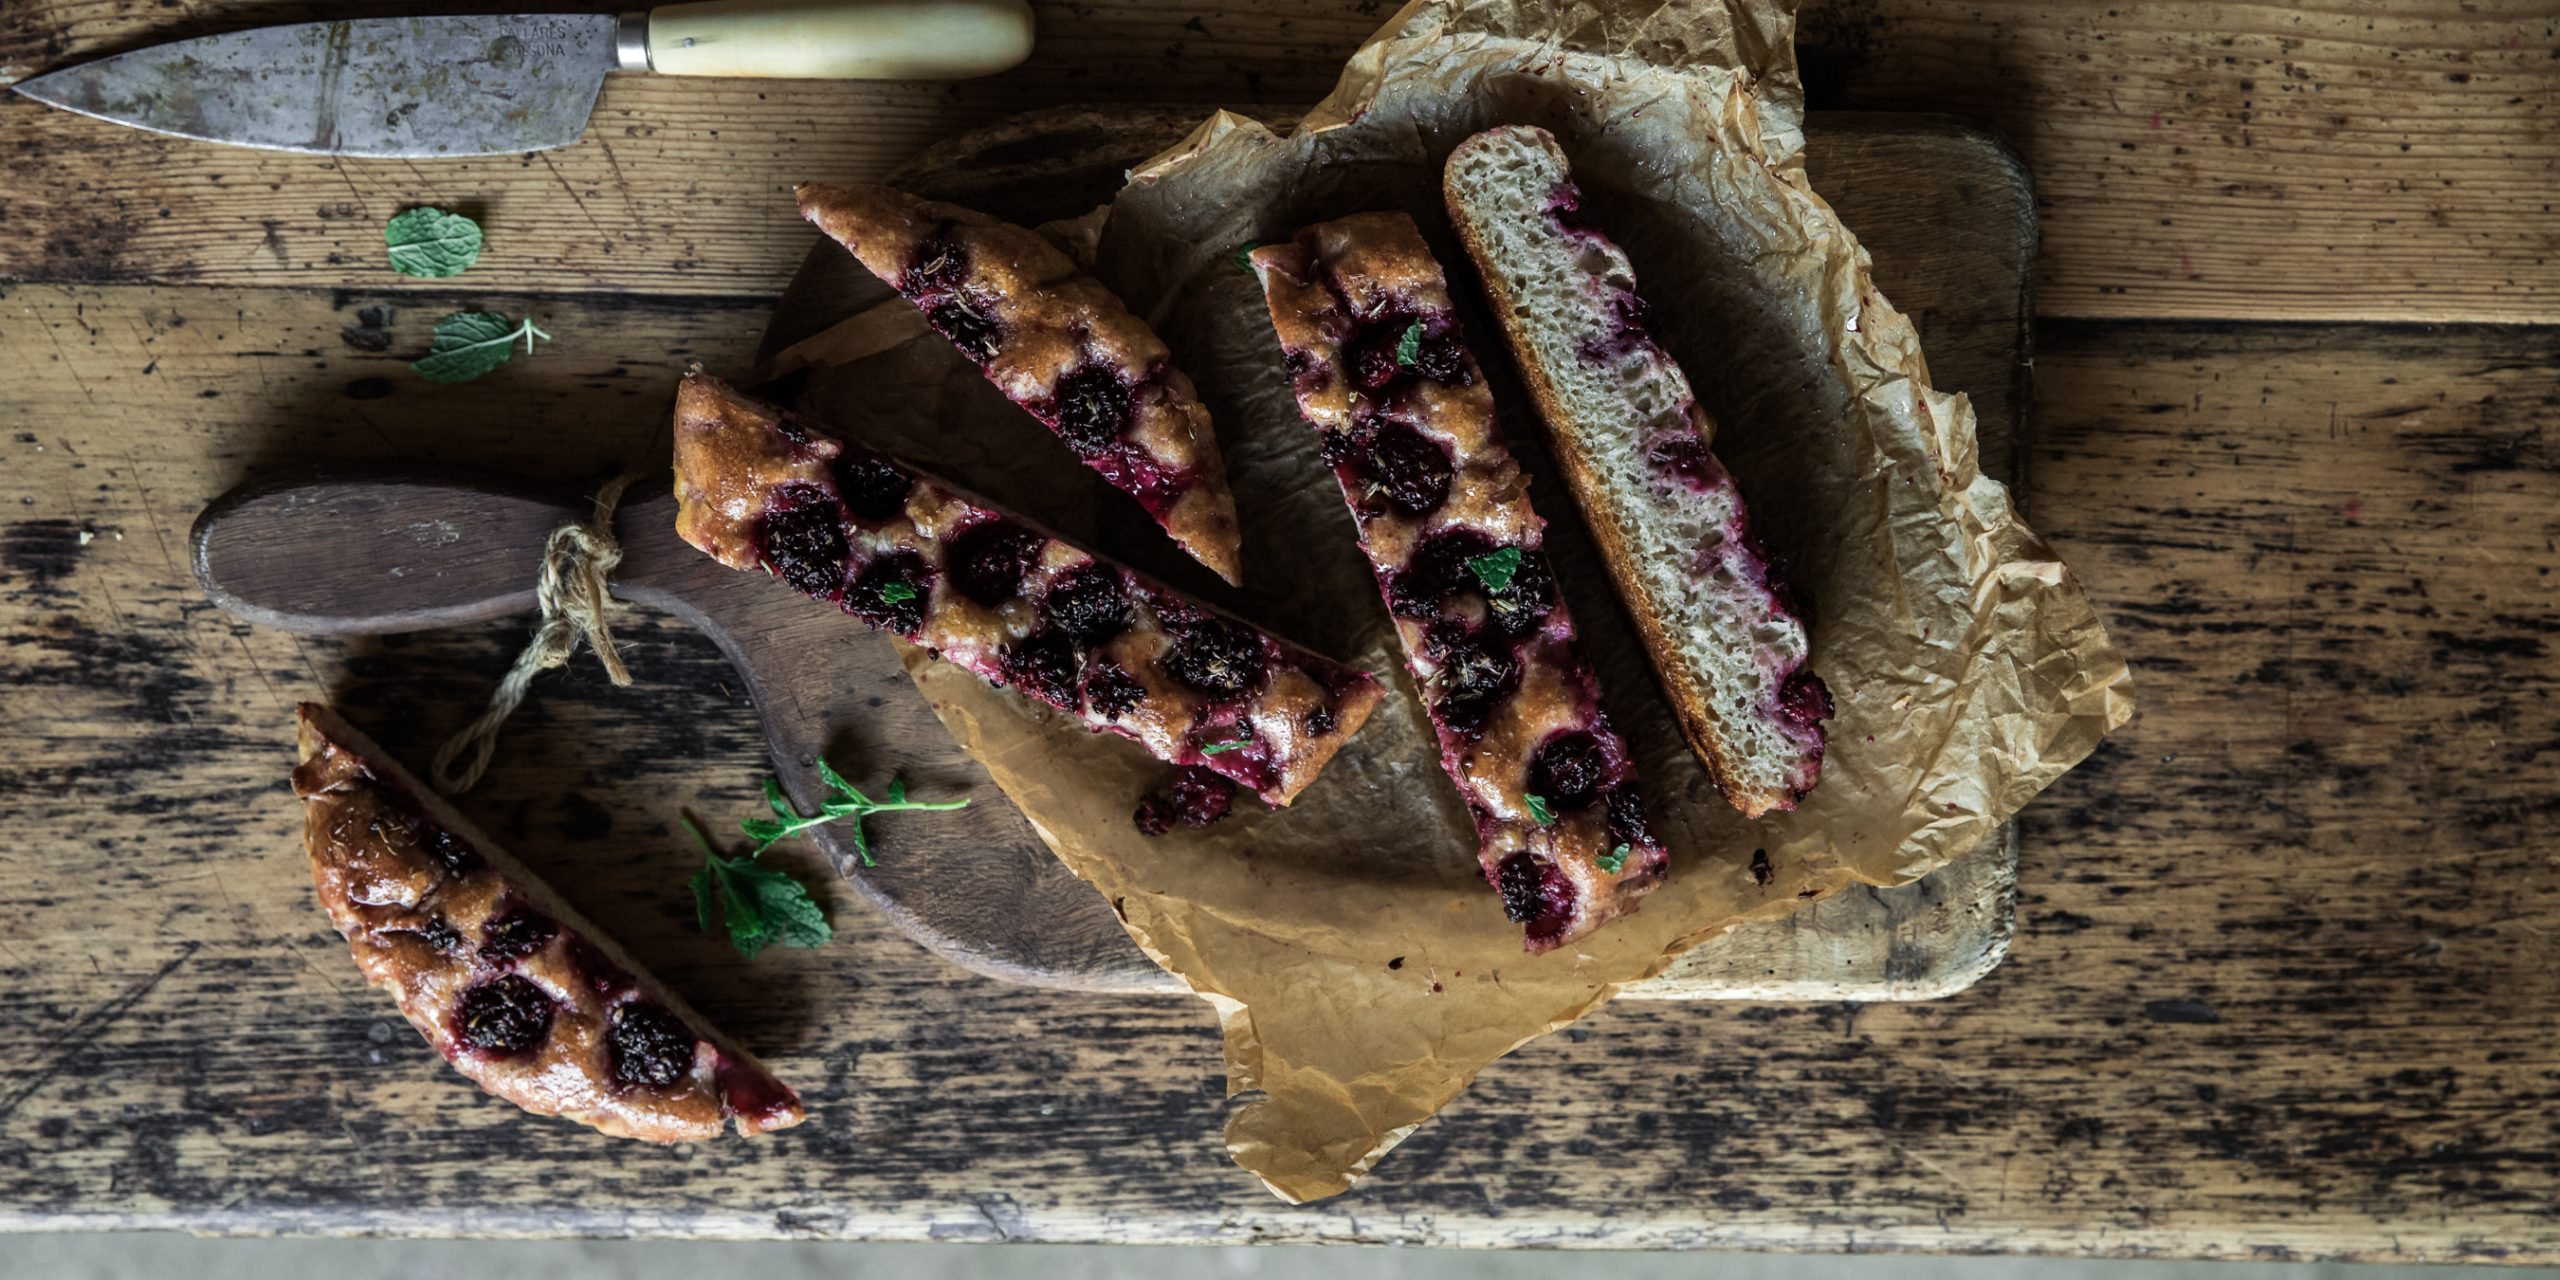 Life Kitchen - a simple Sourdough Blackberry, Fennel & Pistachio Focaccia